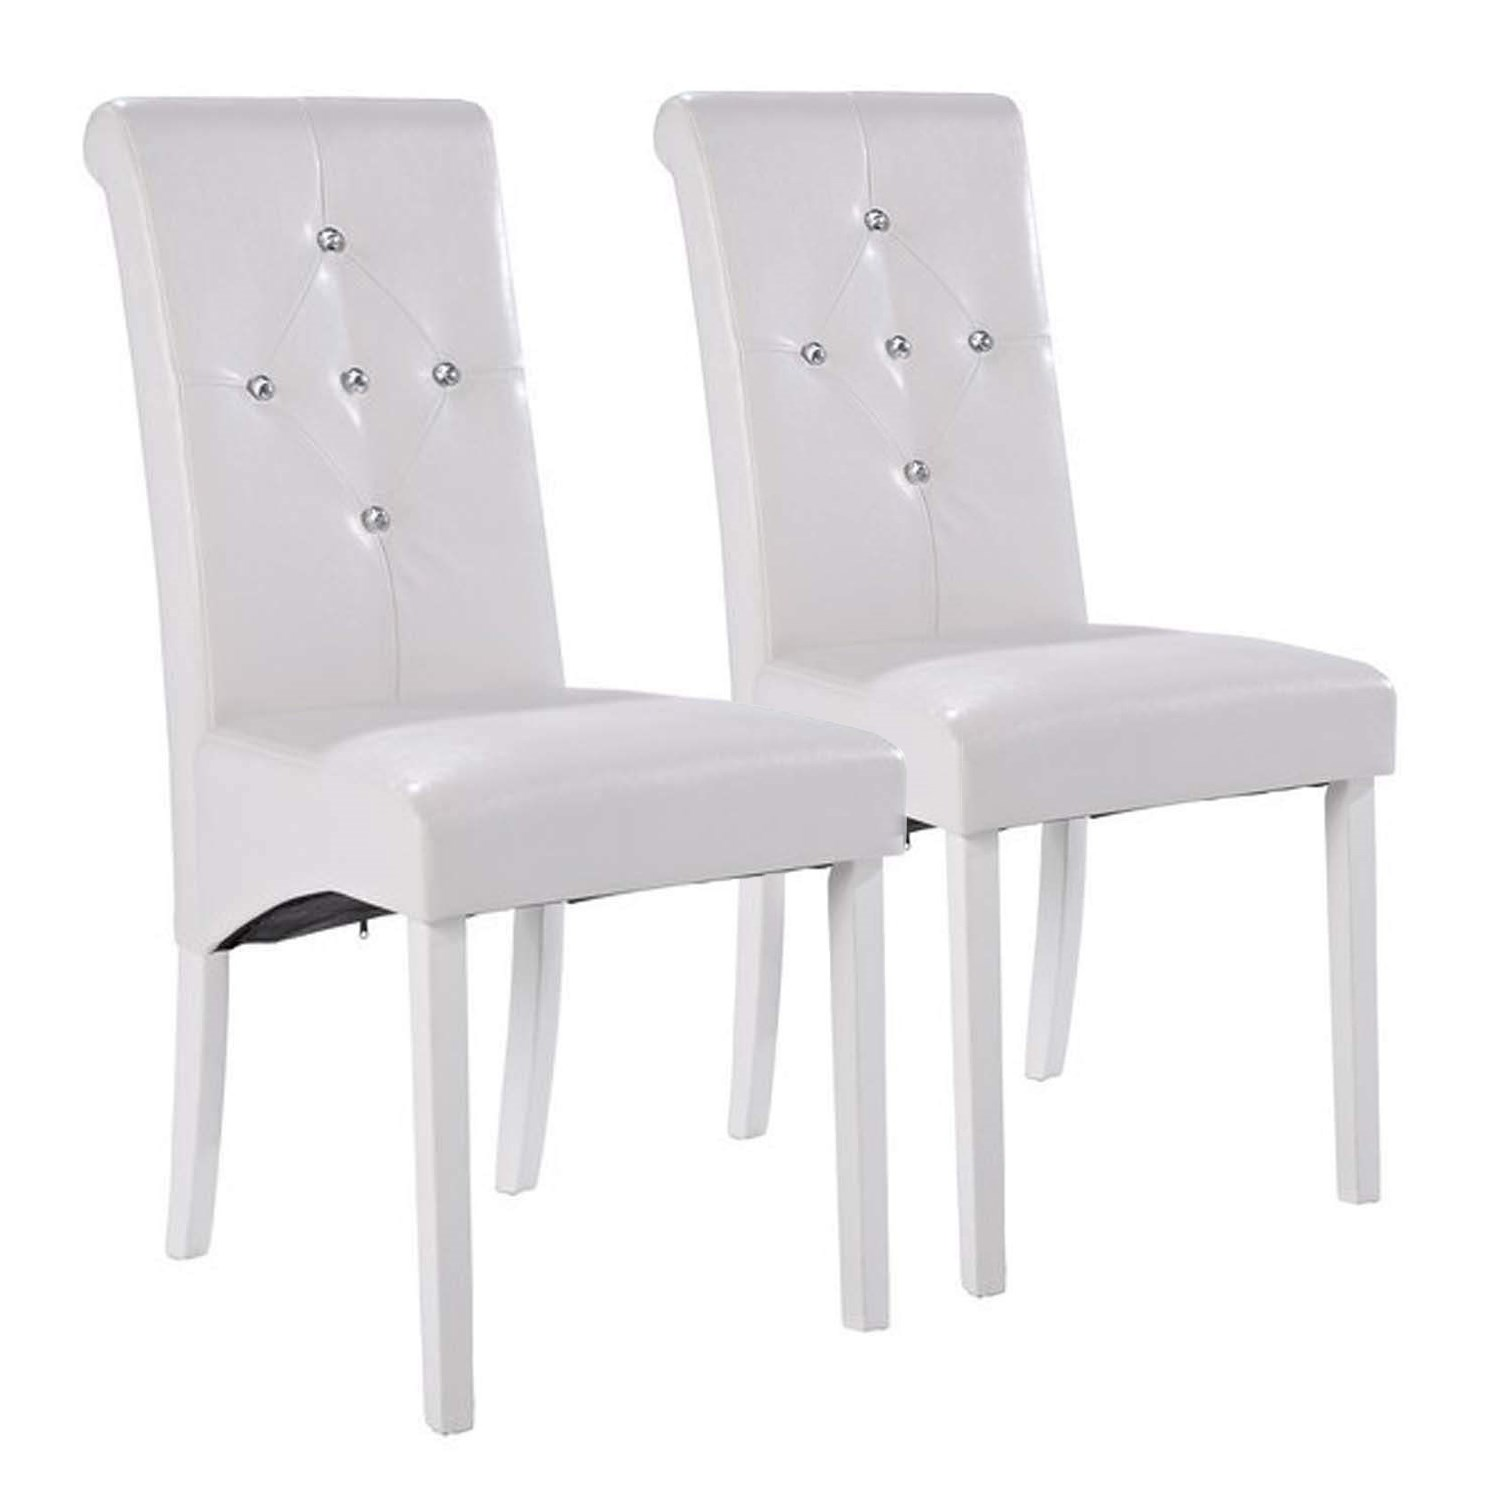 Glamorous pair of lpd monroe diamante dining chairs in for White dining chairs